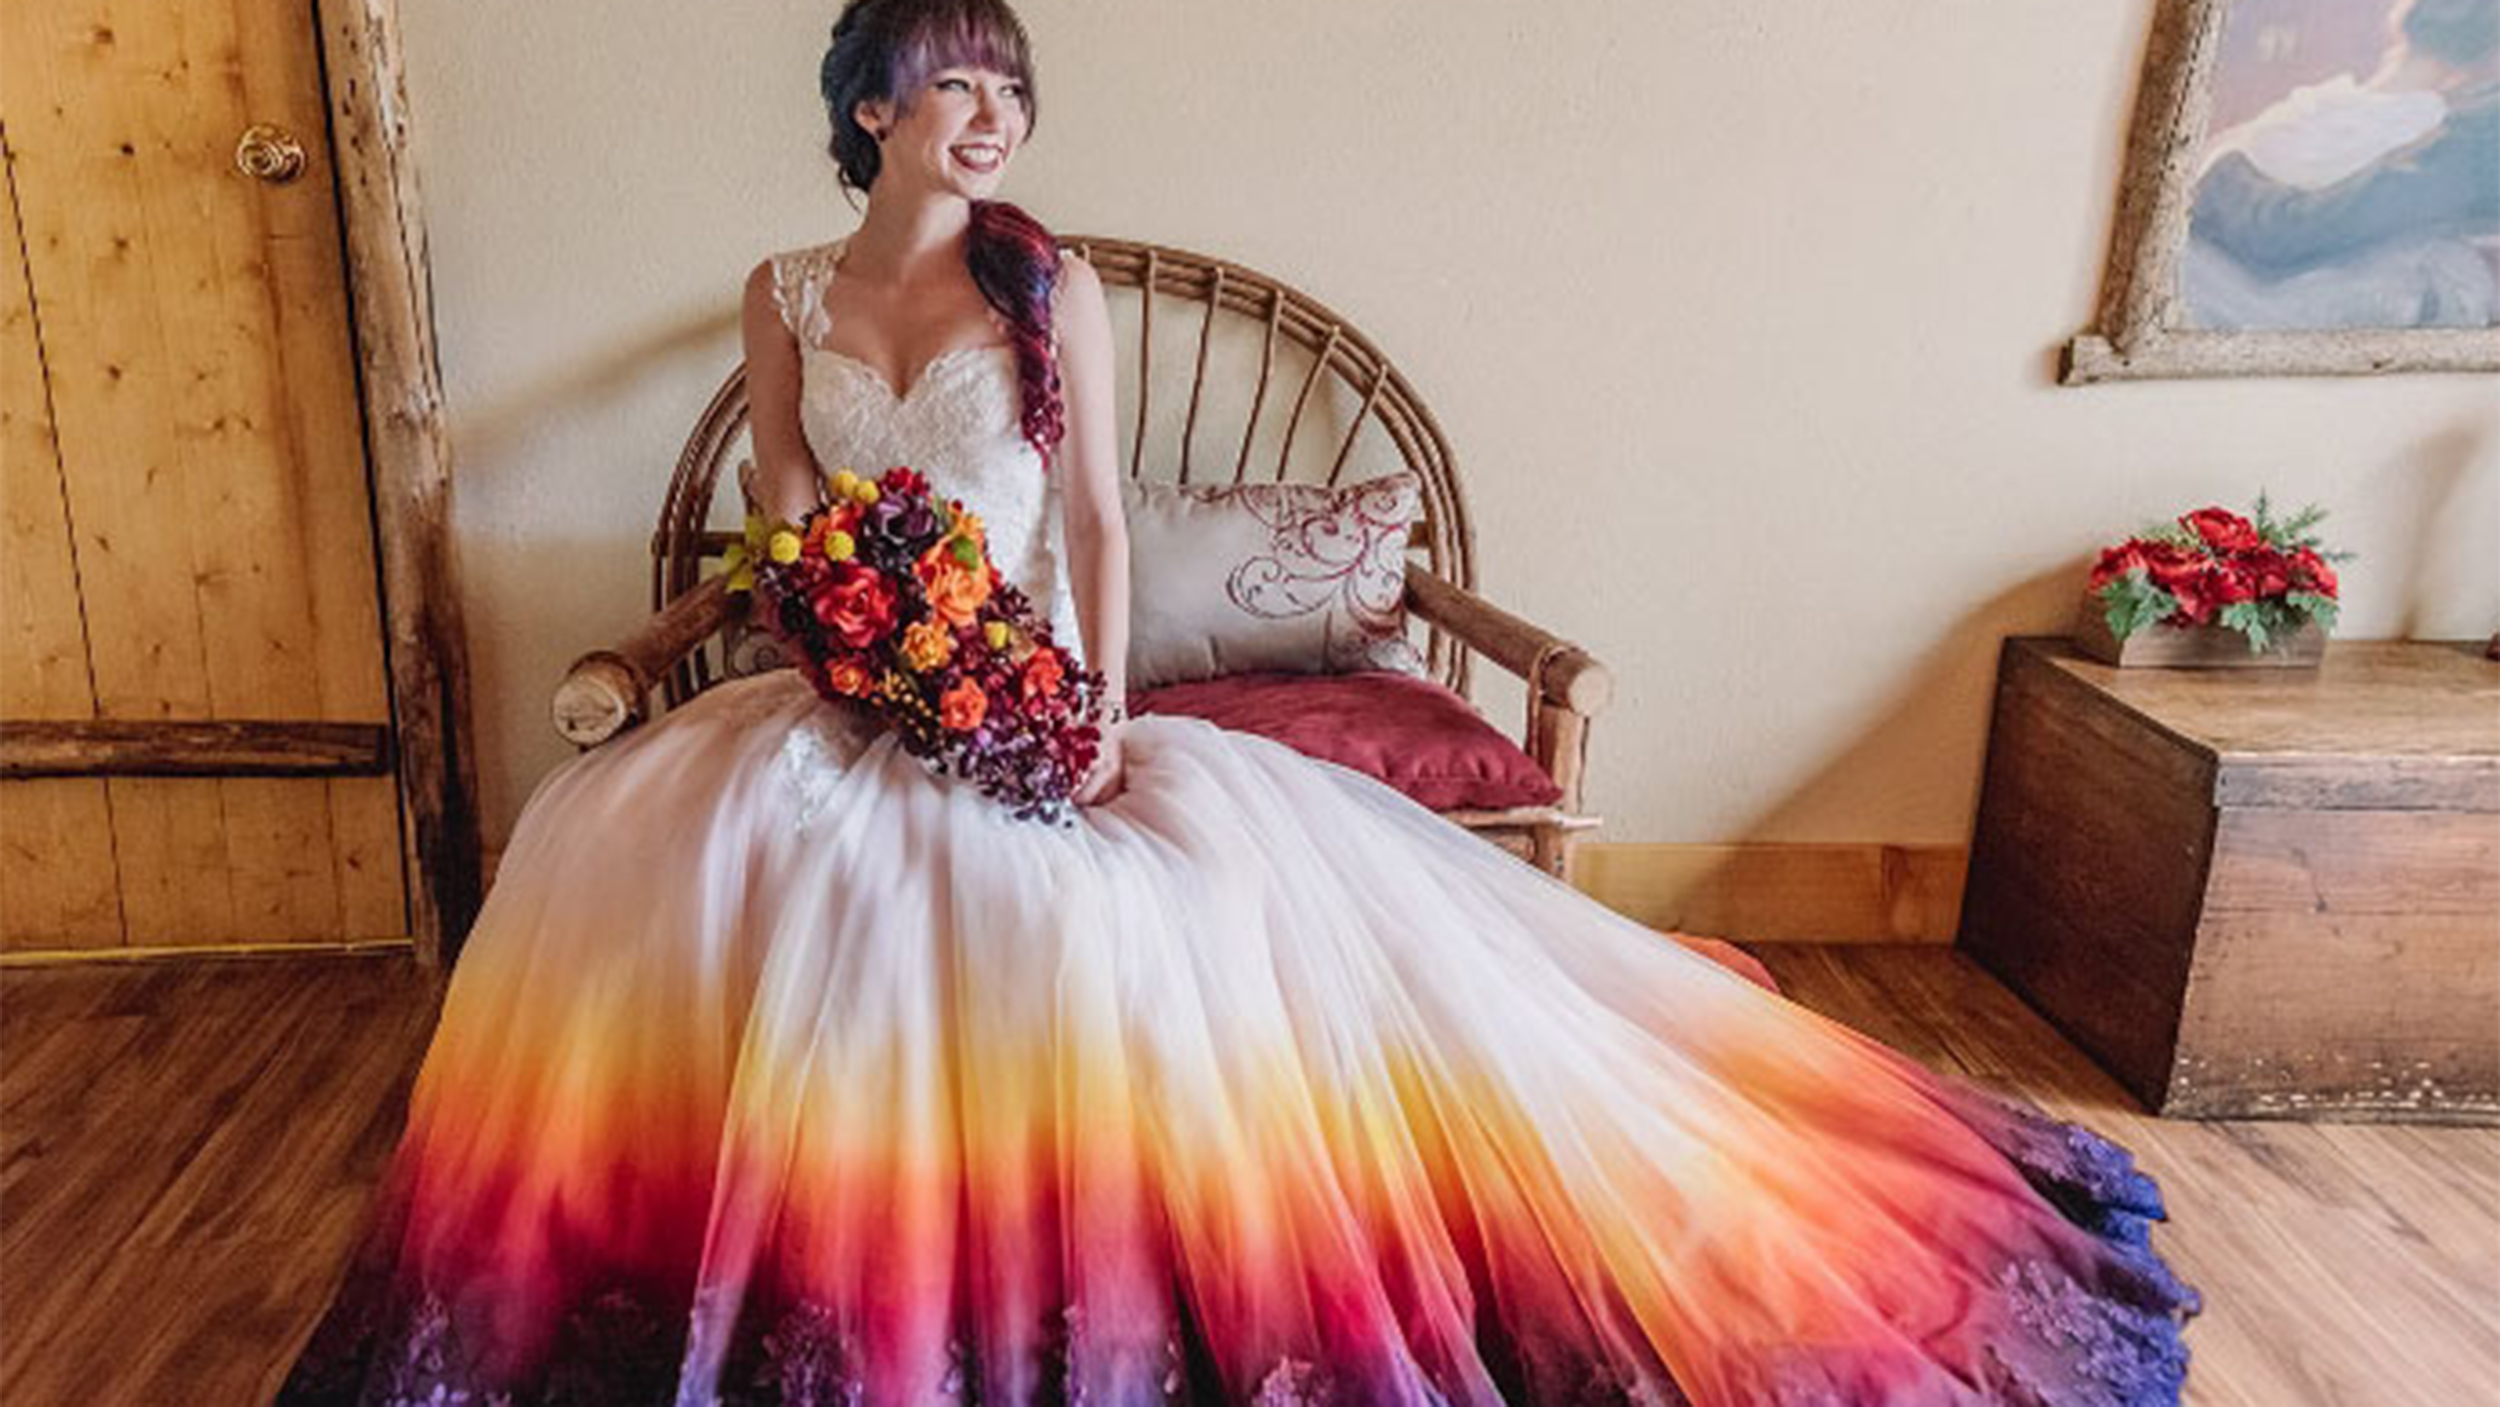 dip dyed colorful wedding dresses are new bridal trend t tie dye wedding dress Dip dyed colorful wedding dresses are the new bridal trend TODAY com